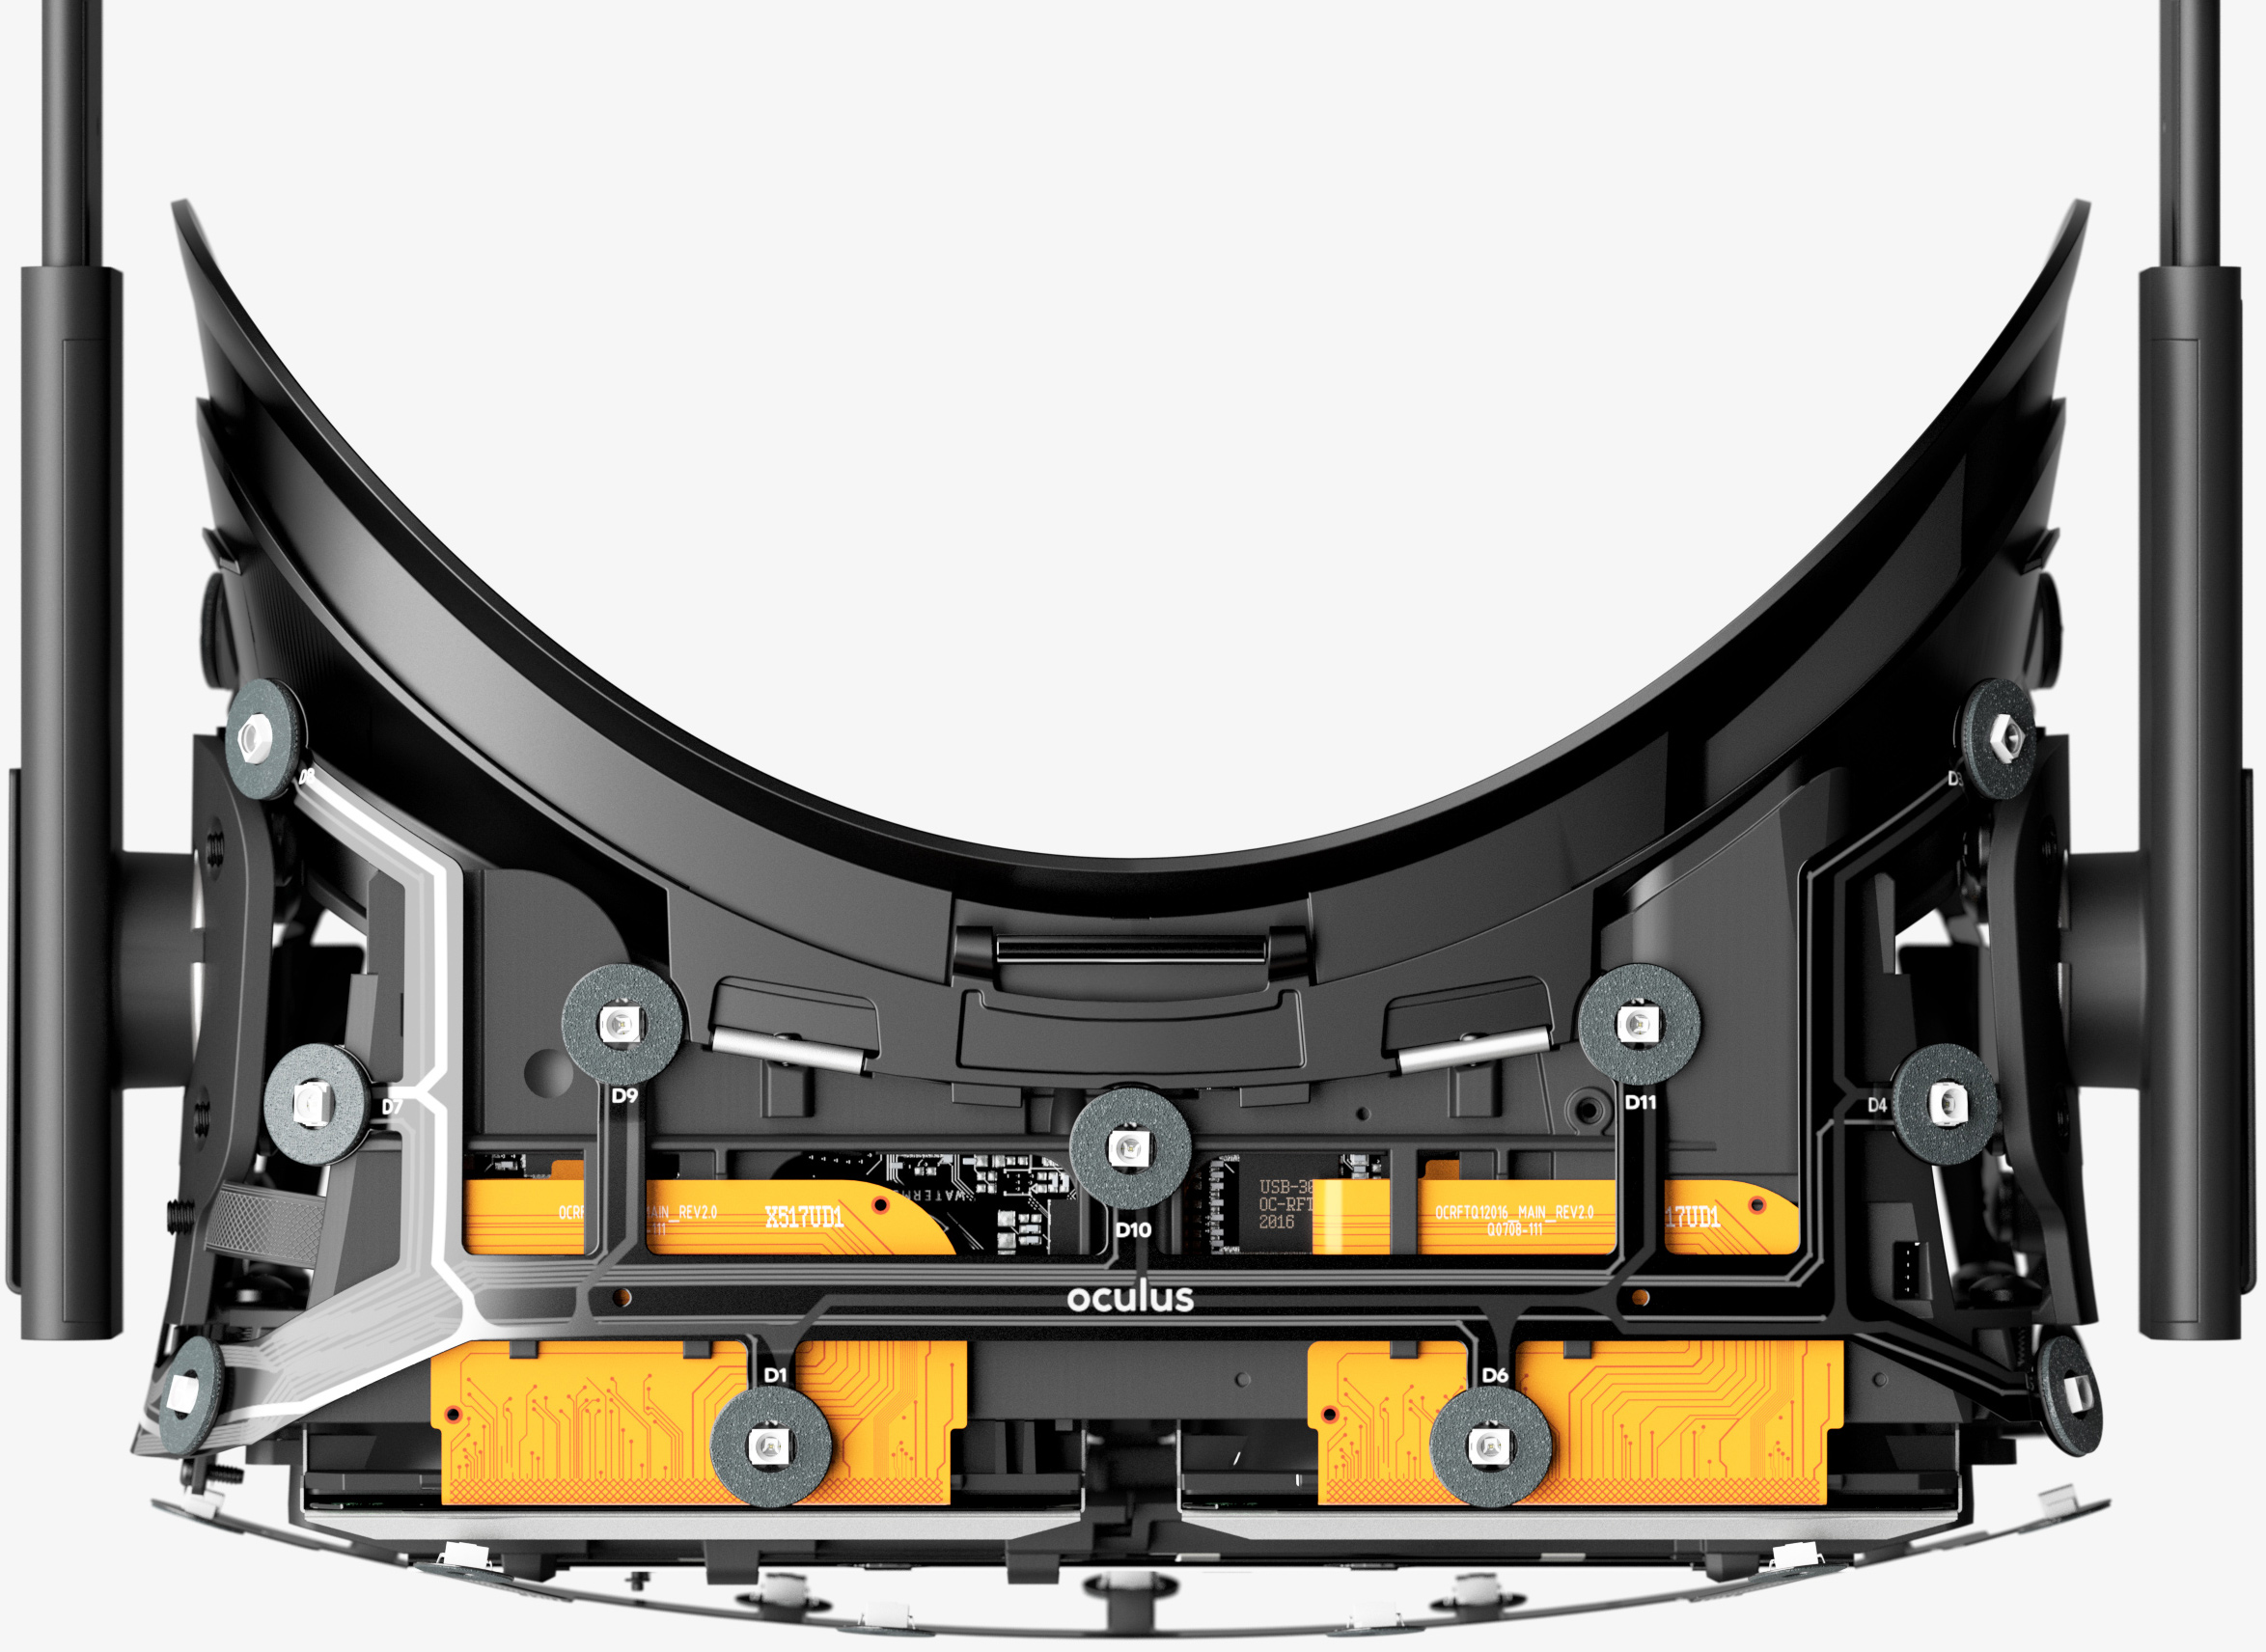 c87f318a1f91 The Oculus Rift virtual reality headset uses a lot of custom components  that were designed specifically for this device. For example